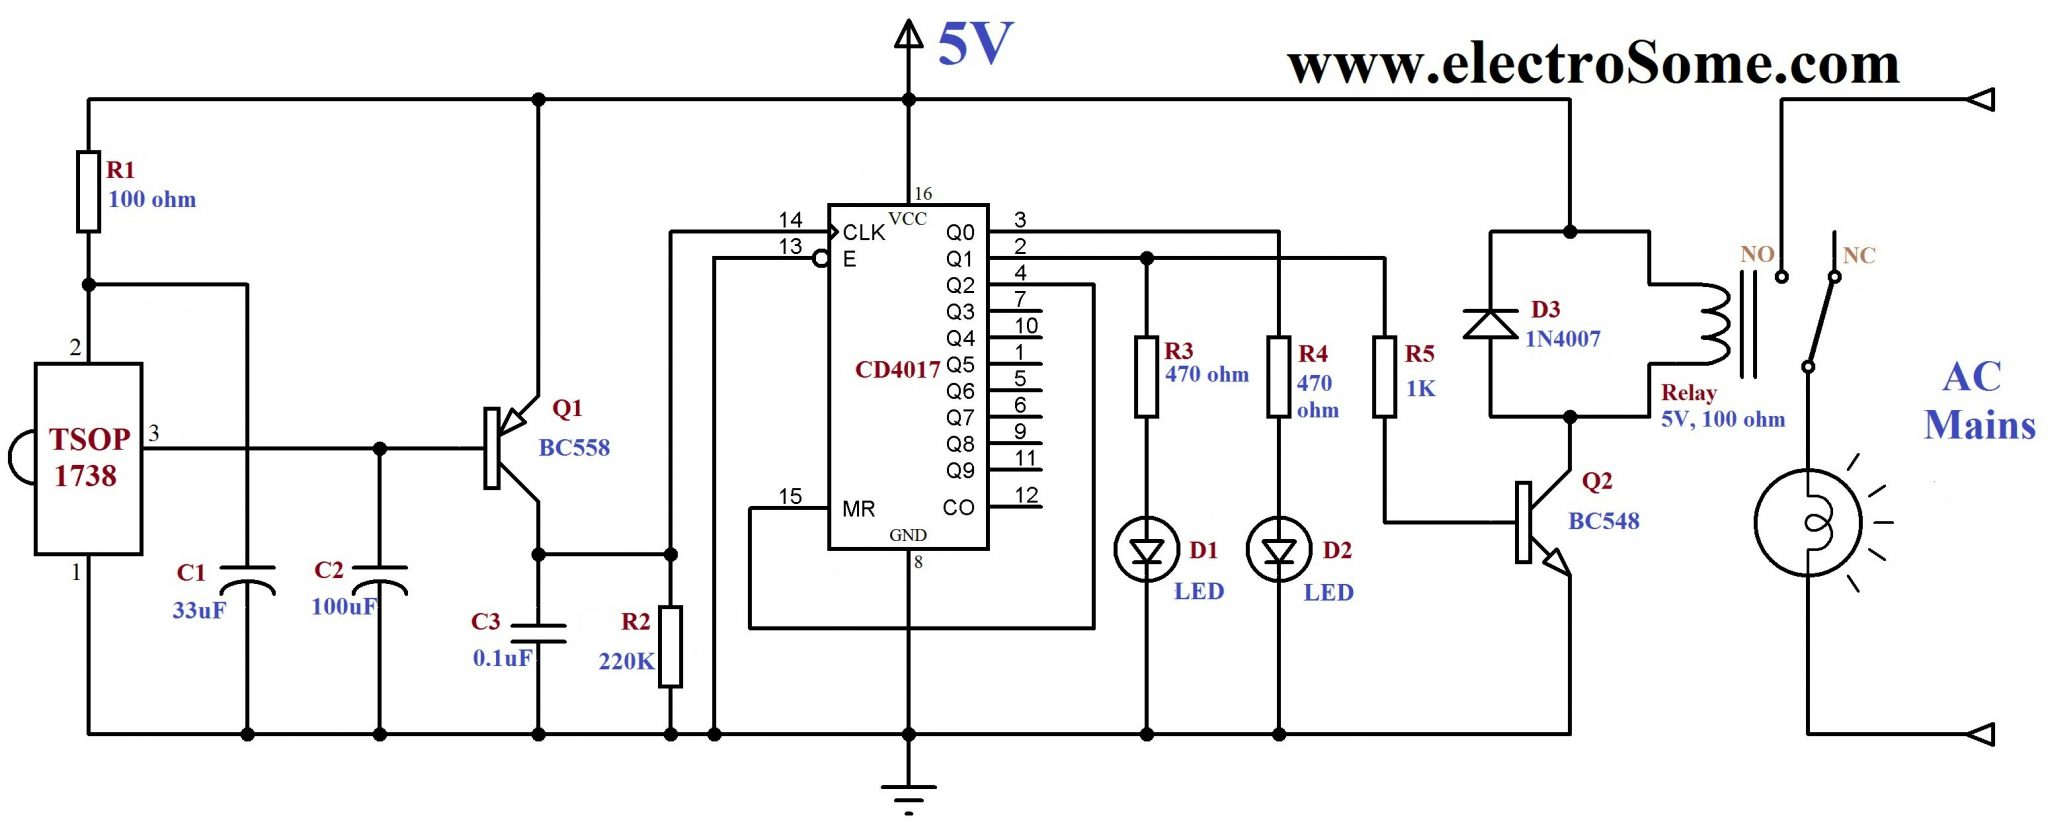 home circuit diagram the wiring diagram infrared remote control for home appliances circuit diagram